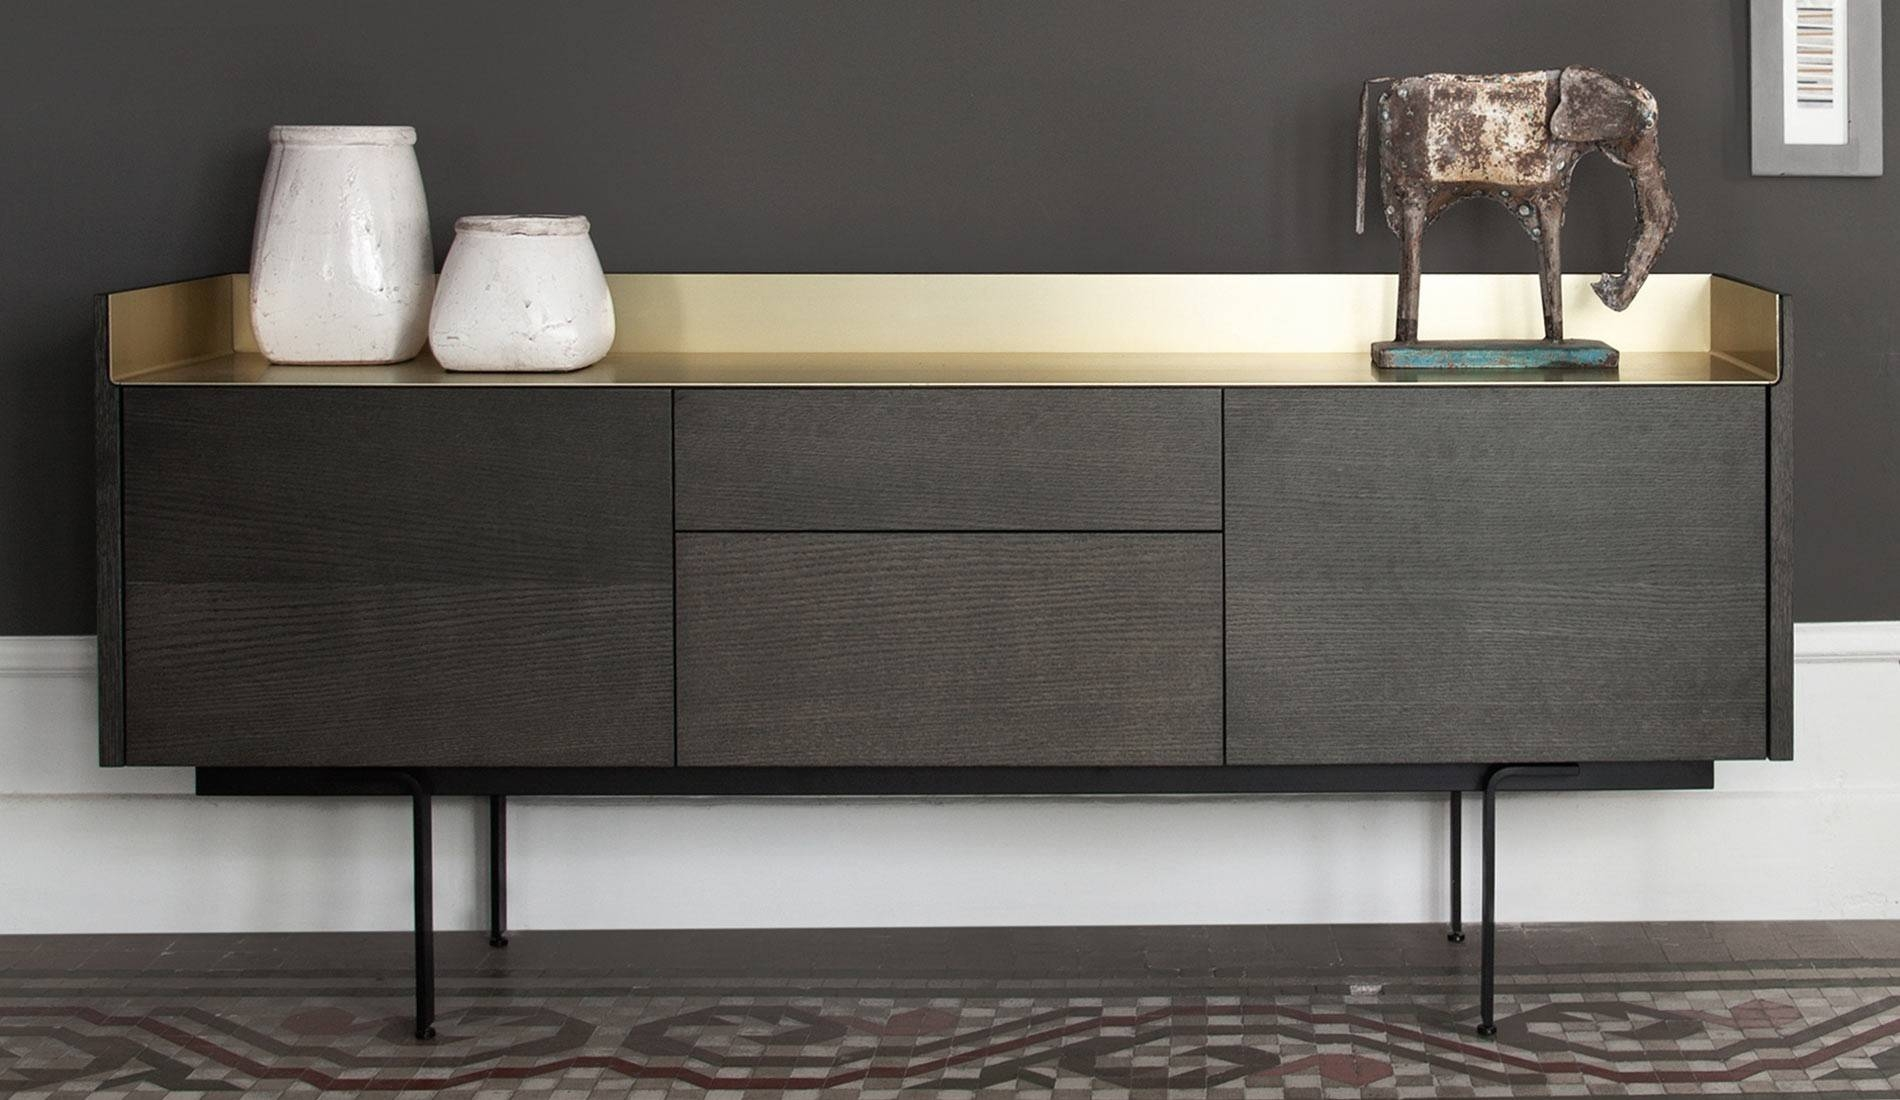 Punt Stockholm 3b Sideboard | Dopo Domani Pertaining To Stockholm Sideboards (View 5 of 15)